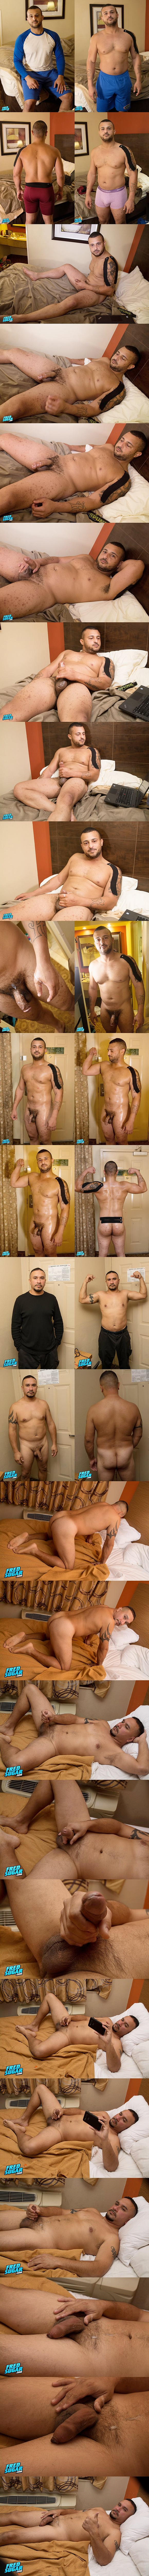 Fredsugar - muscular country stud Lance Ryder and macho straight daddy Longstroke strip down to expose their tight virgin manholes before they jerk off 02